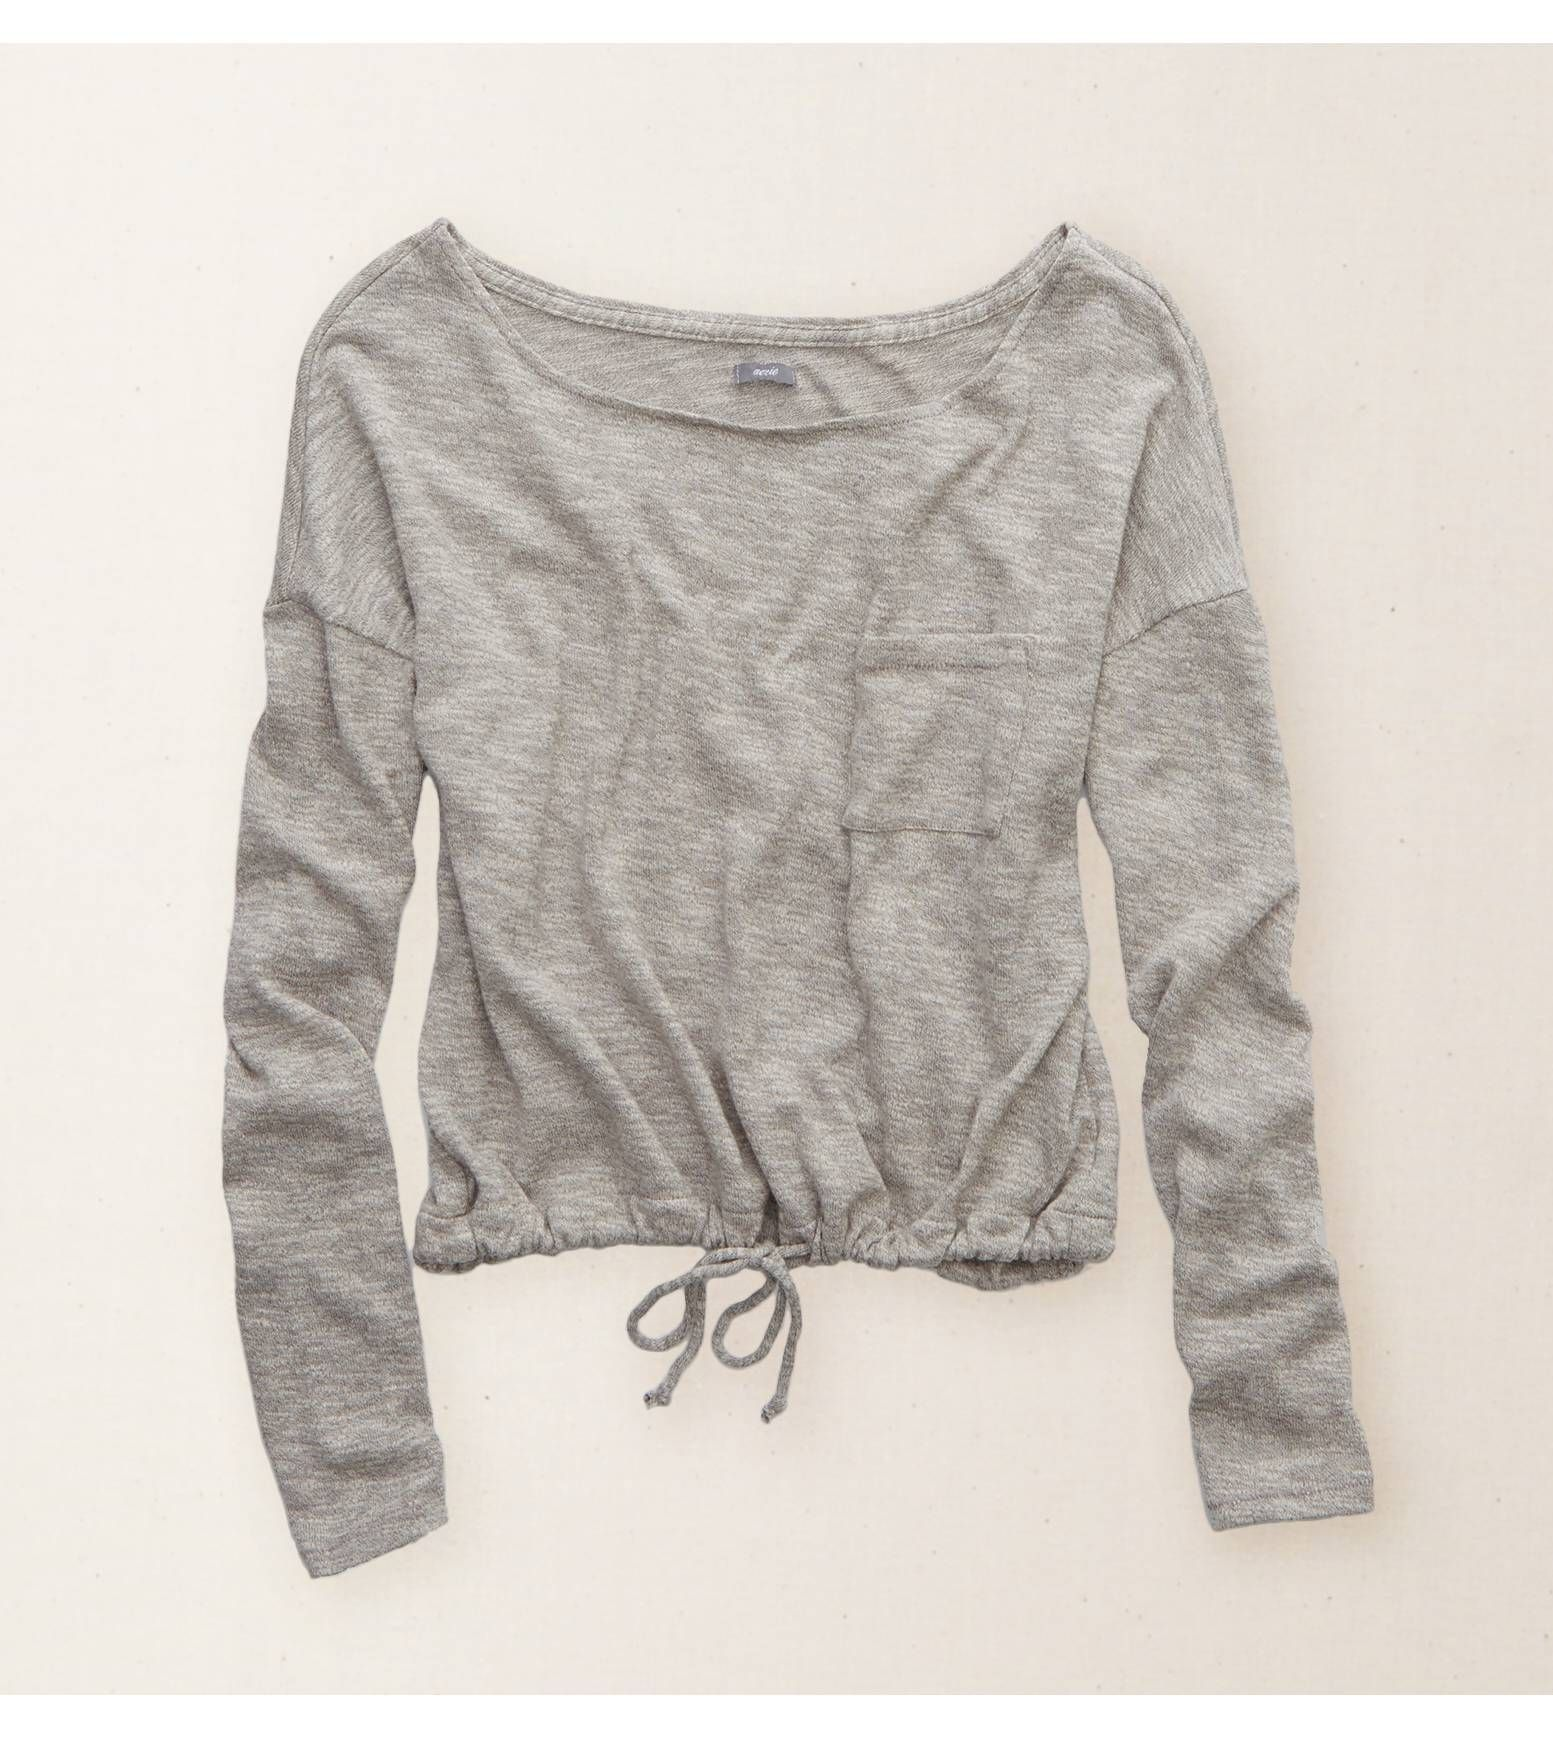 Gris losa top con cordón aerie dress me up pinterest american